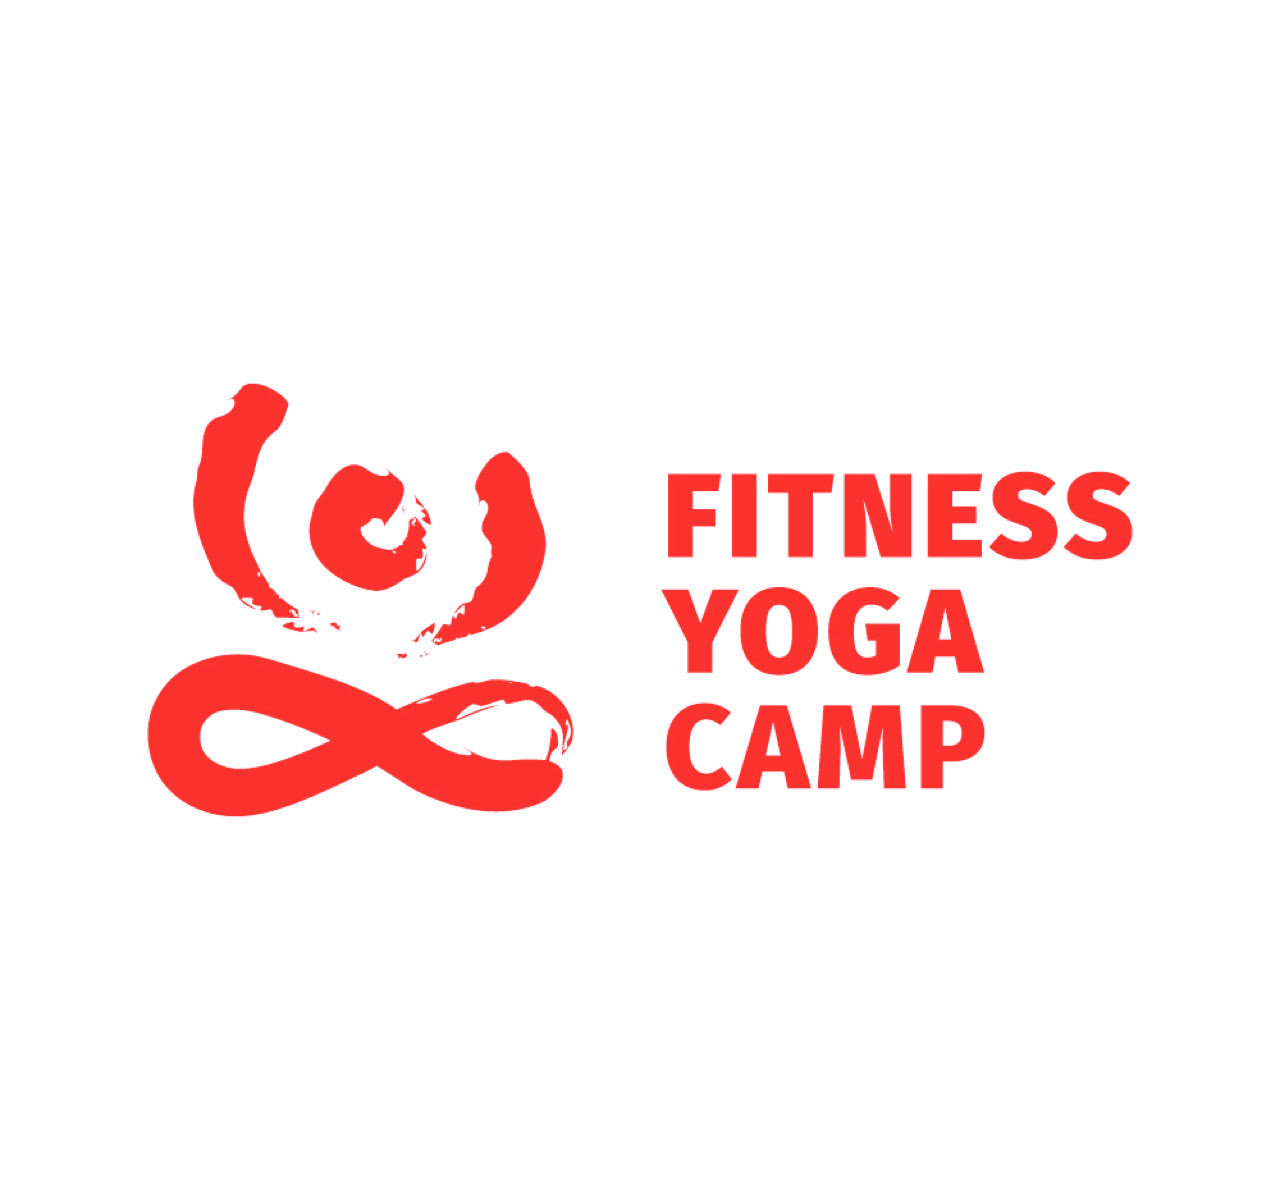 Fitness Yoga Camp